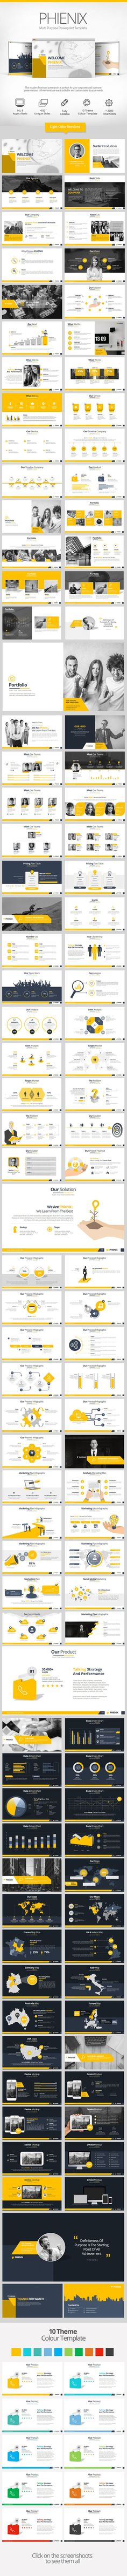 Buy Phienix Powerpoint Presentation by Jhon_D_Atom on GraphicRiver. Phienix Powerpoint is perfect for your corporate and business presentations. All elements are easily editable and cus. Design Presentation, Corporate Presentation, Powerpoint Presentation Templates, Keynote Template, Powerpoint Themes, Keynote Design, Design Brochure, Web Design, Slide Design